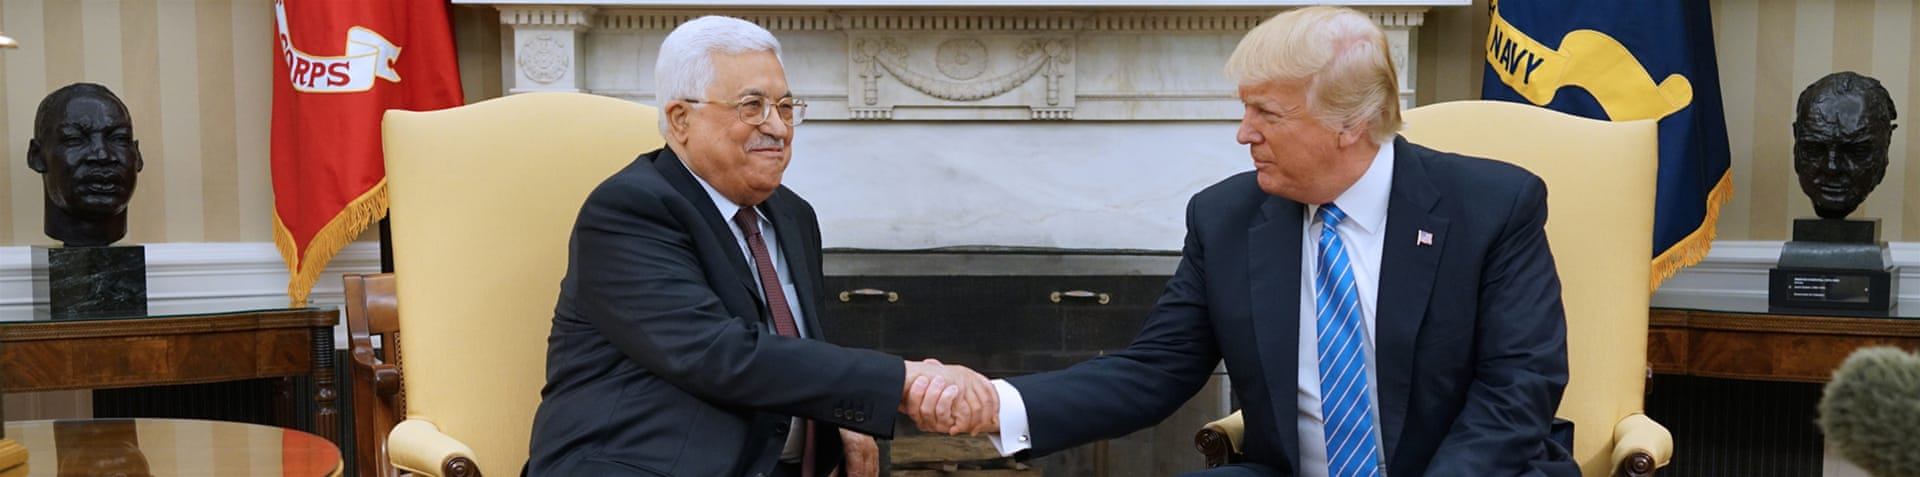 Trump hosts Abbas for the first time since coming to office [Evan Vucci/AP]